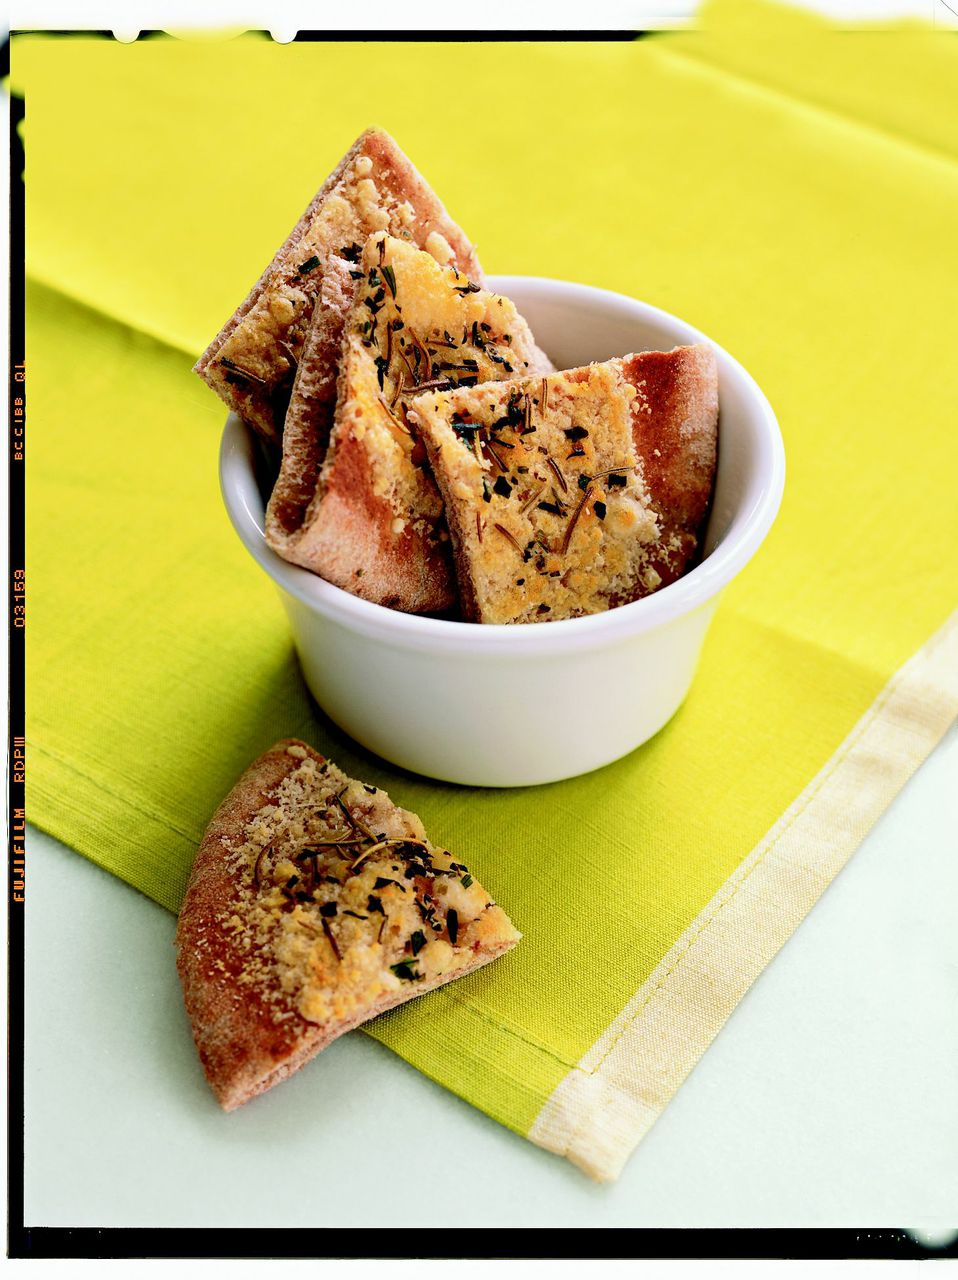 6. Parmesan Pita Crisps Sprinkle 2 tablespoons of grated Parmesan evenly over a 4-inch whole-wheat pita. Dust pita with ¼ teaspoon dried oregano and broil until the cheese browns. Cut into quarters.                                                              Health bonus: Good balance of protein, fat, and fiber.                                                              (MORE: 12 Easy Snacks for Kids)